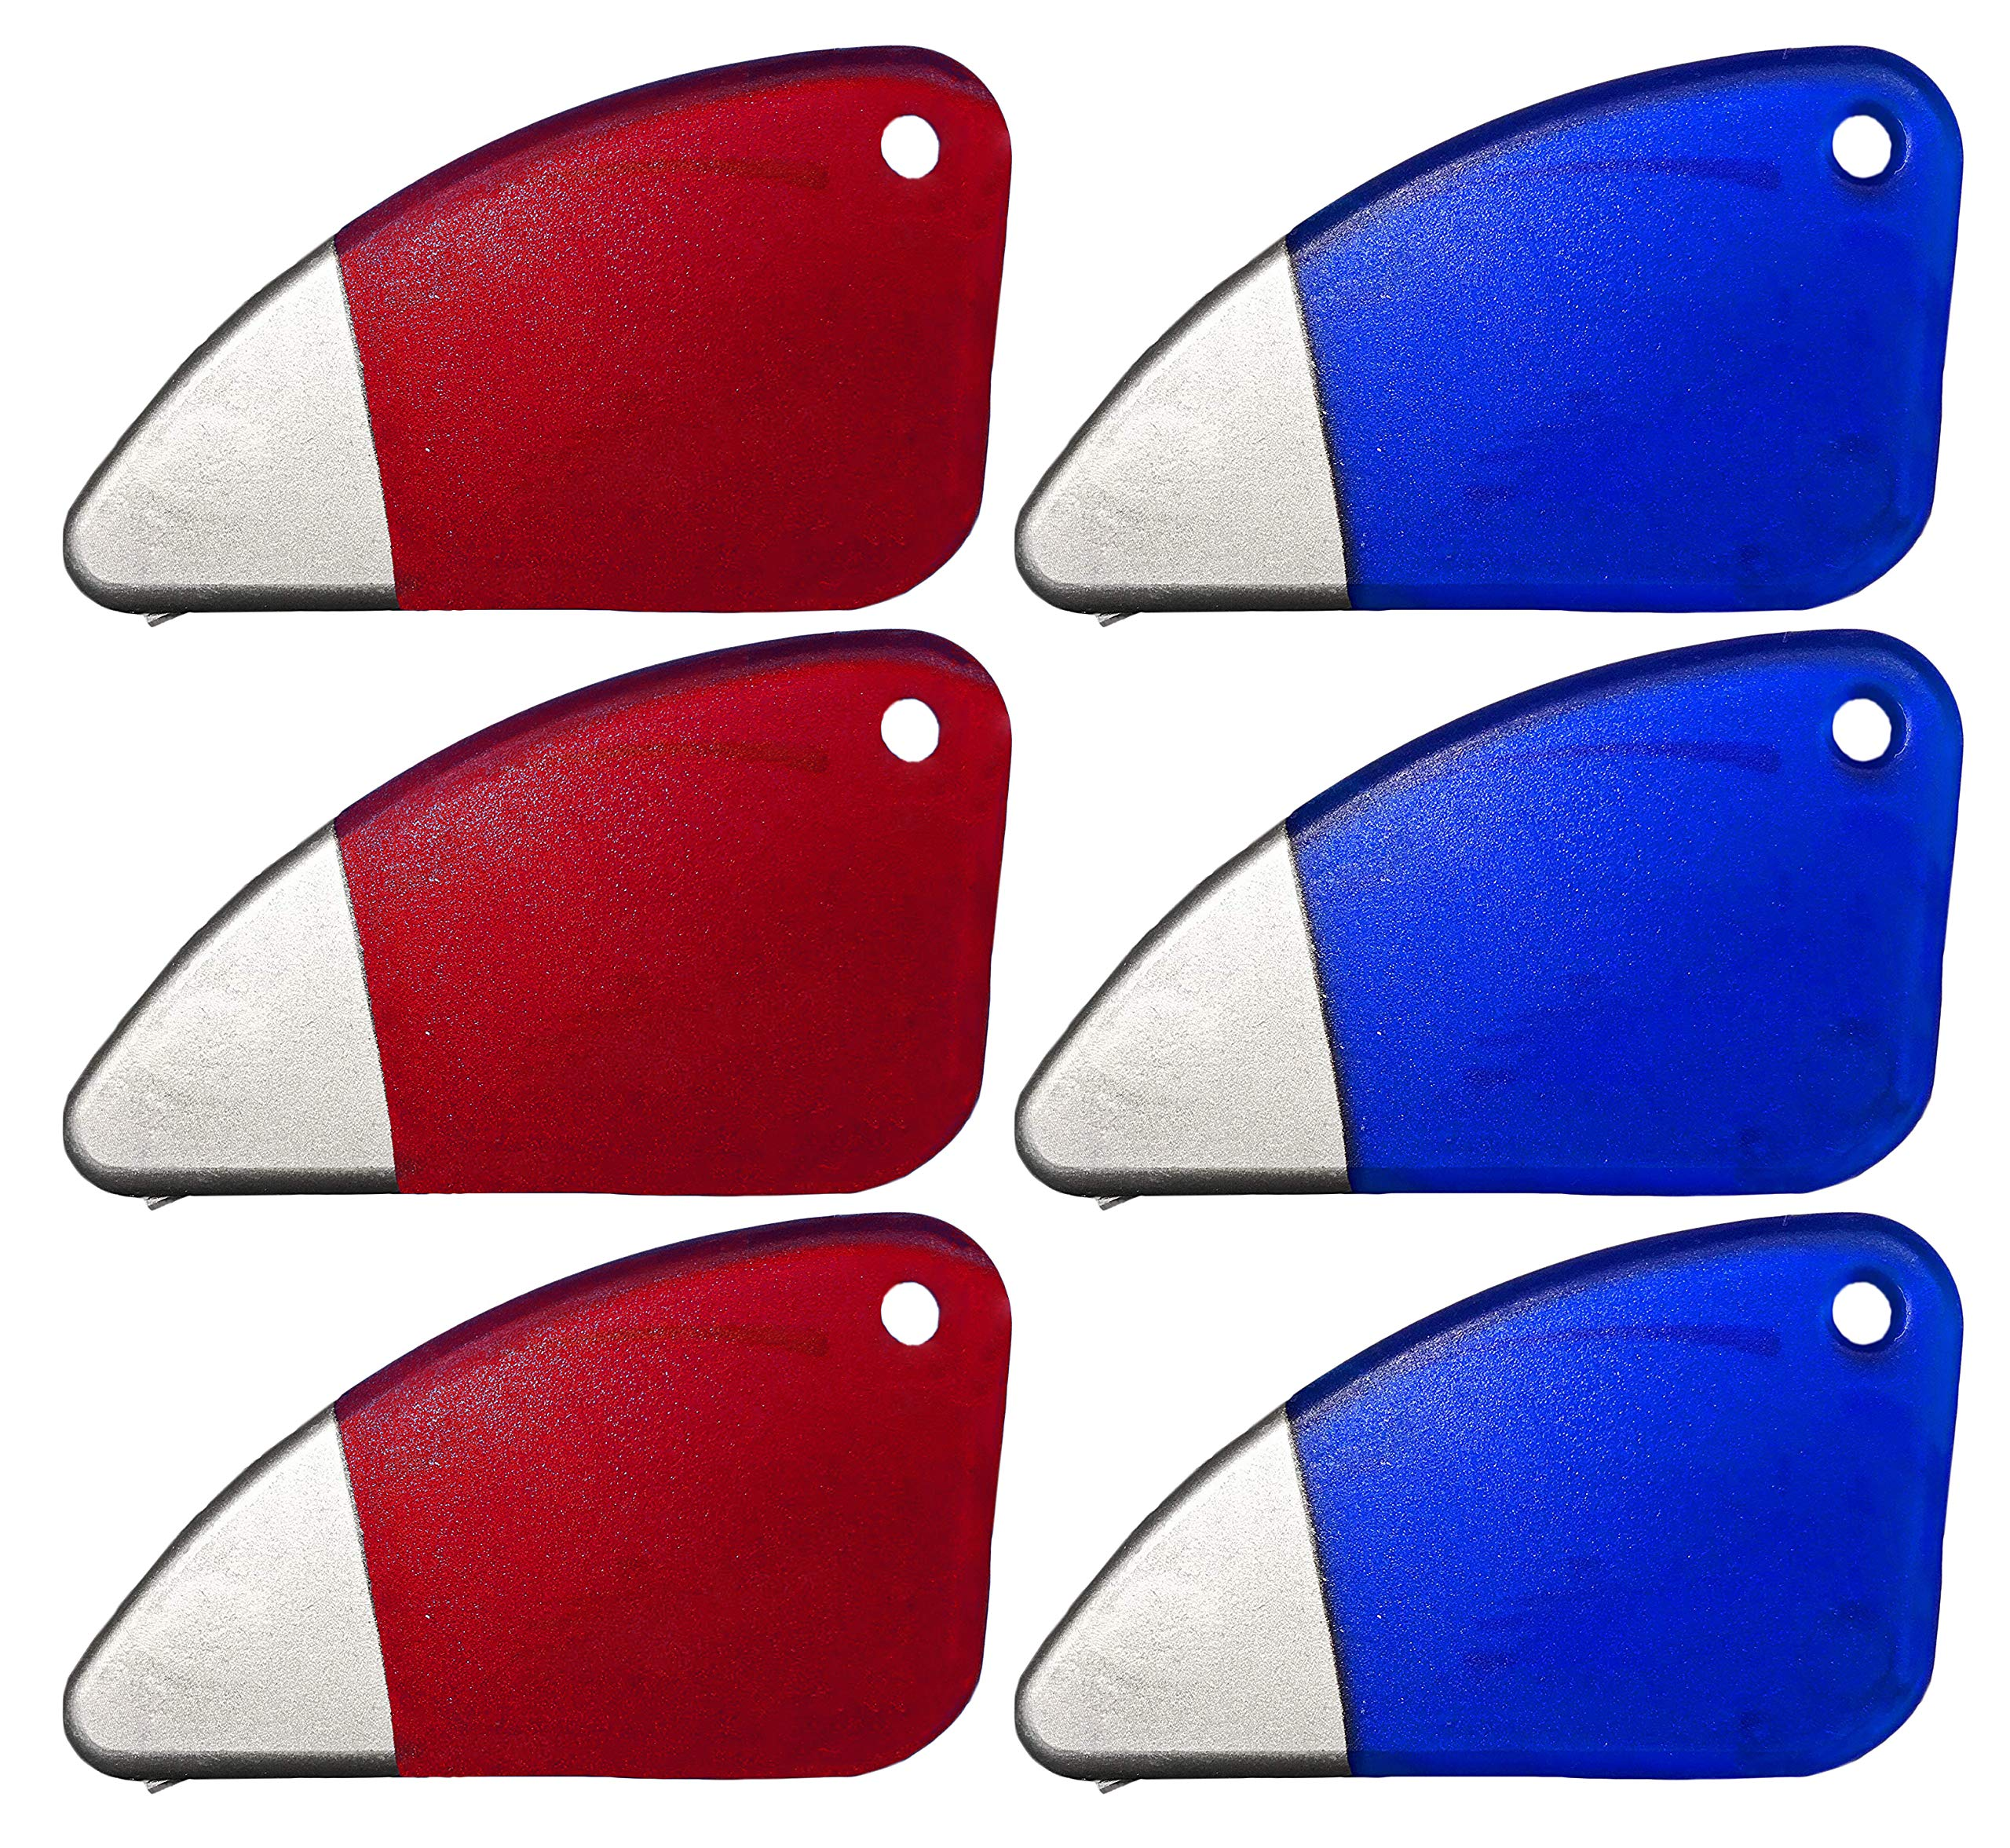 Set of 6 Magnetic Package Opener and Cutting Tools! Safe Ceramic Blade, Finger Friendly Safety Slicer